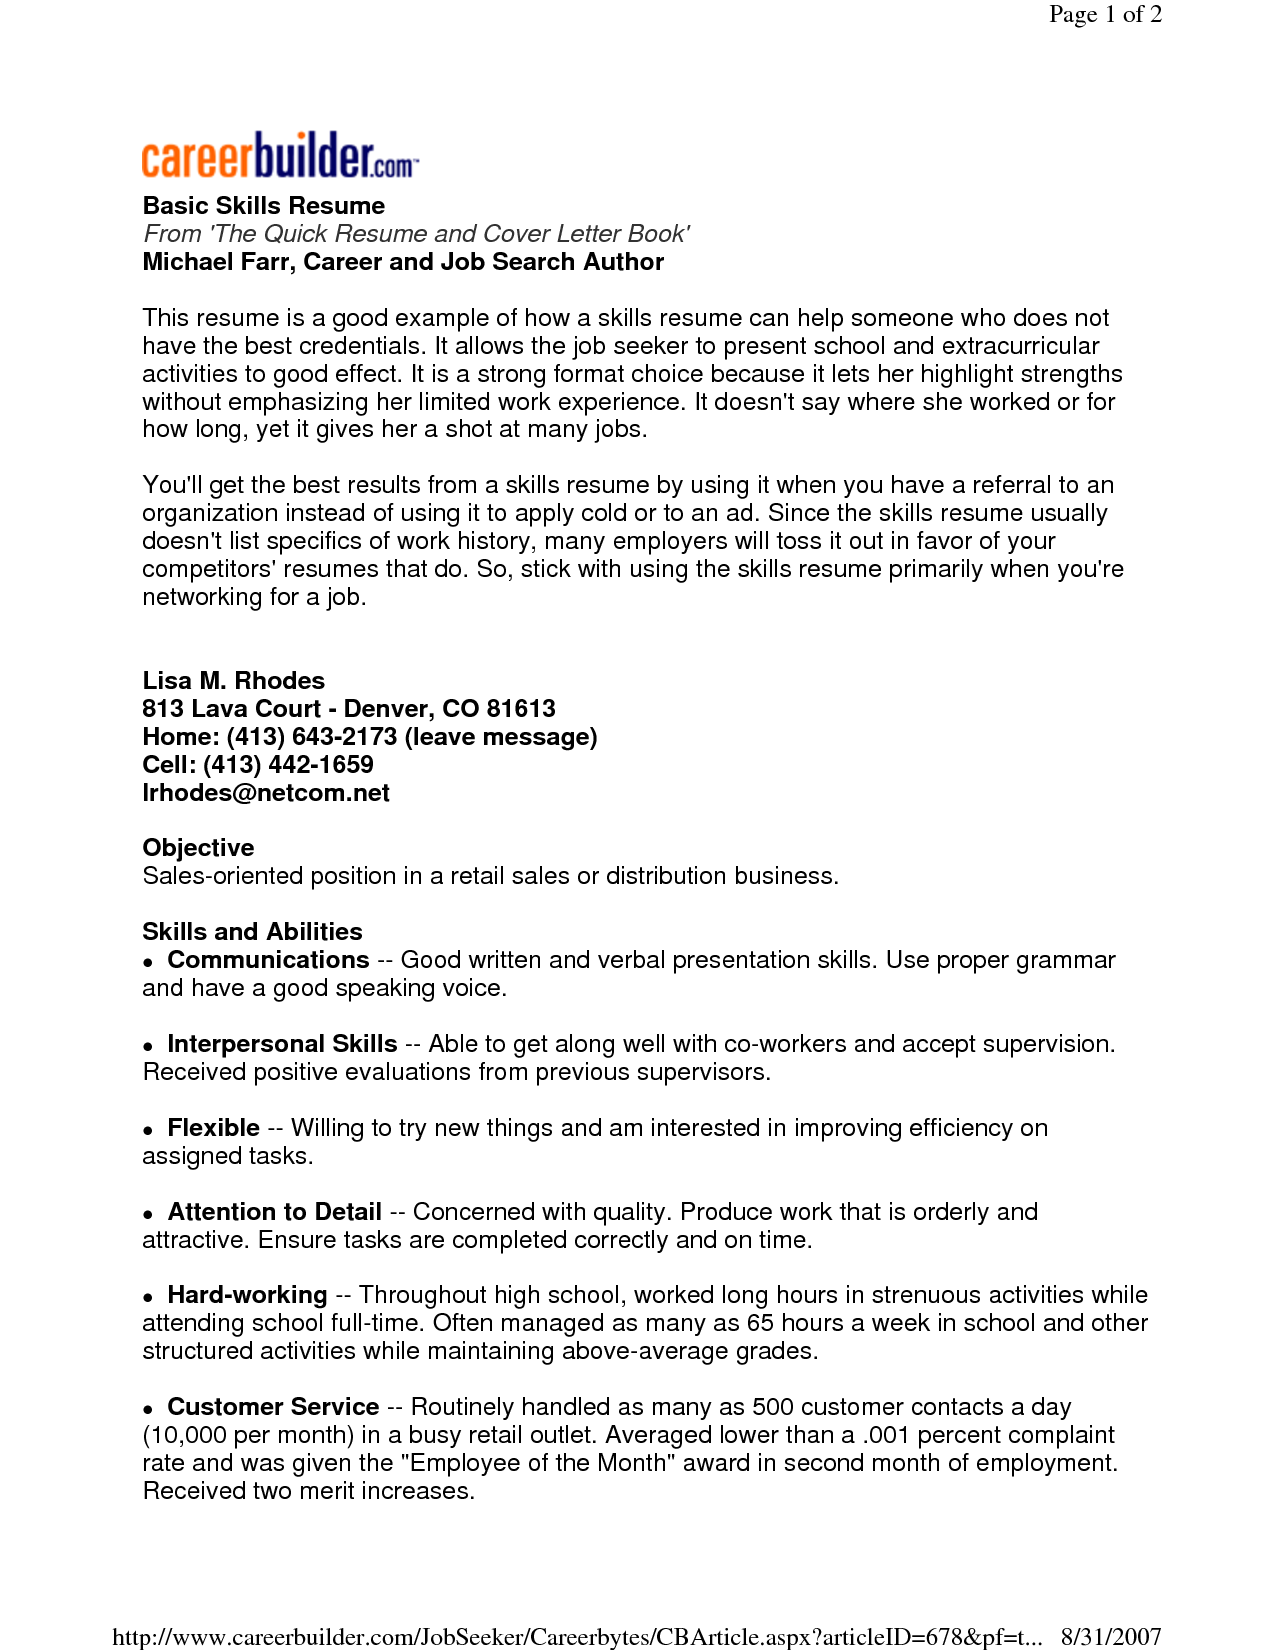 find here the sample resume that best fits your profile in order to get ahead the - Sample Resume Letters